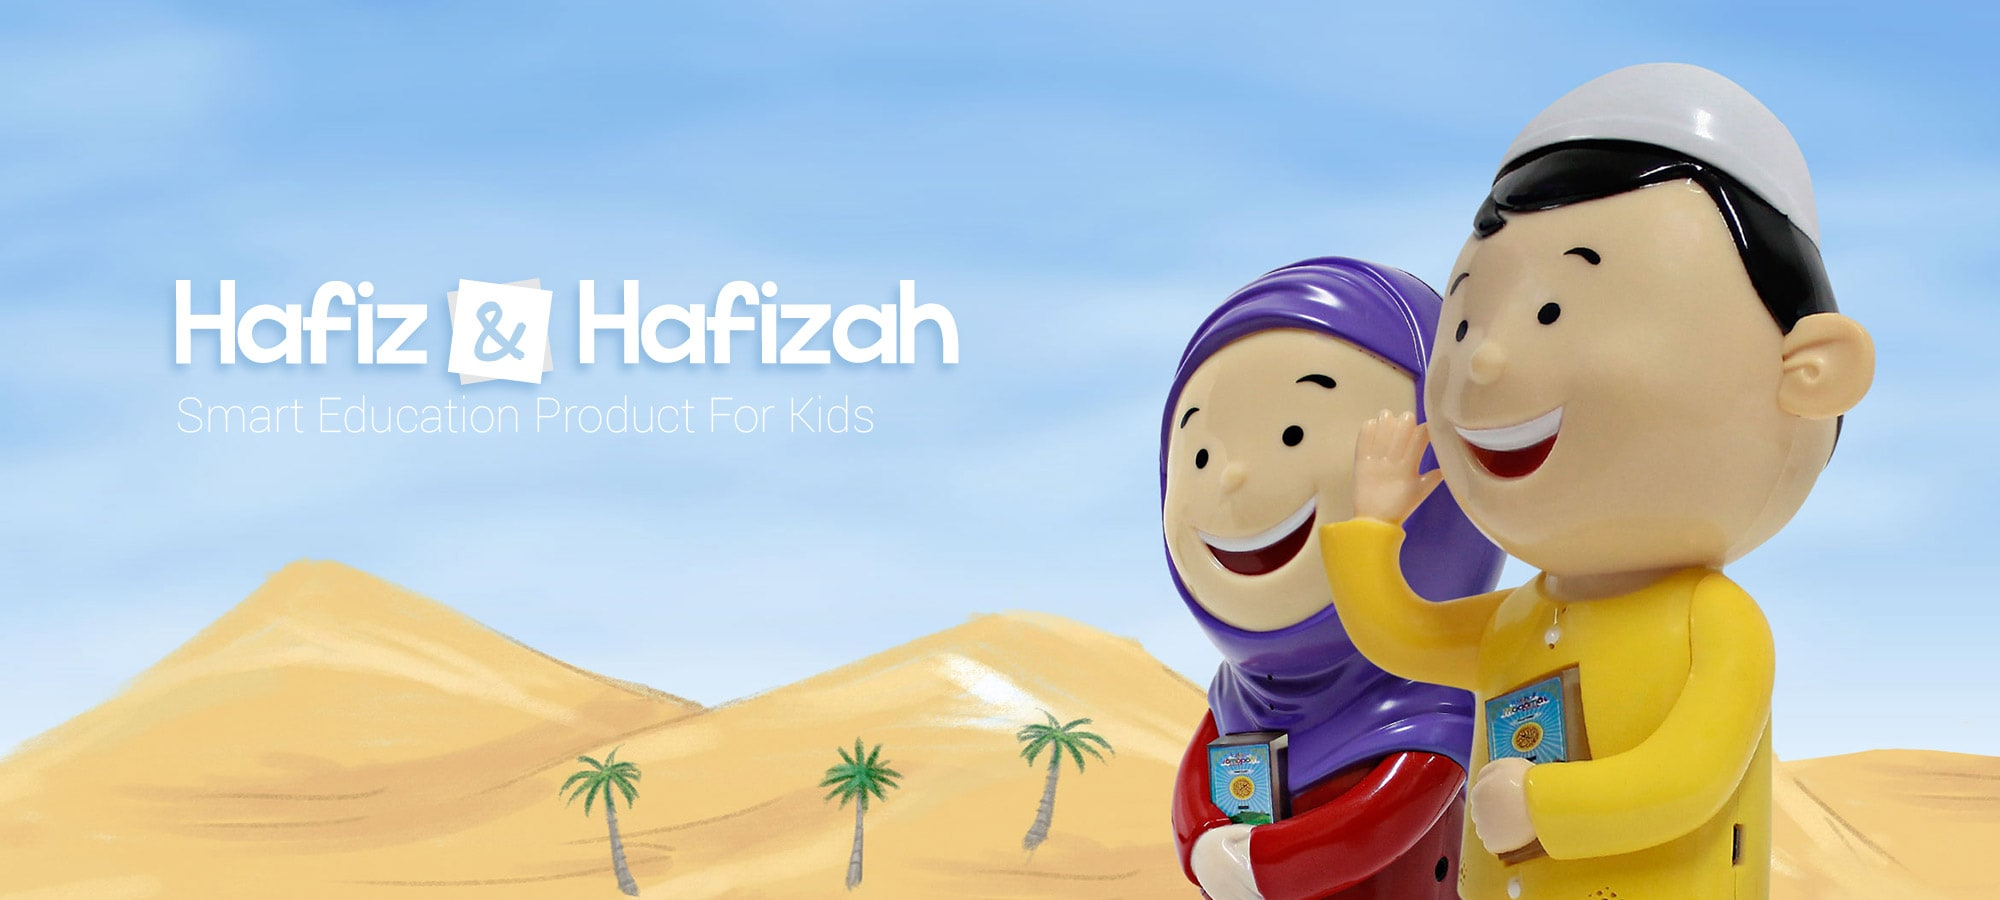 Hafiz-Hafizah-Talking-Doll